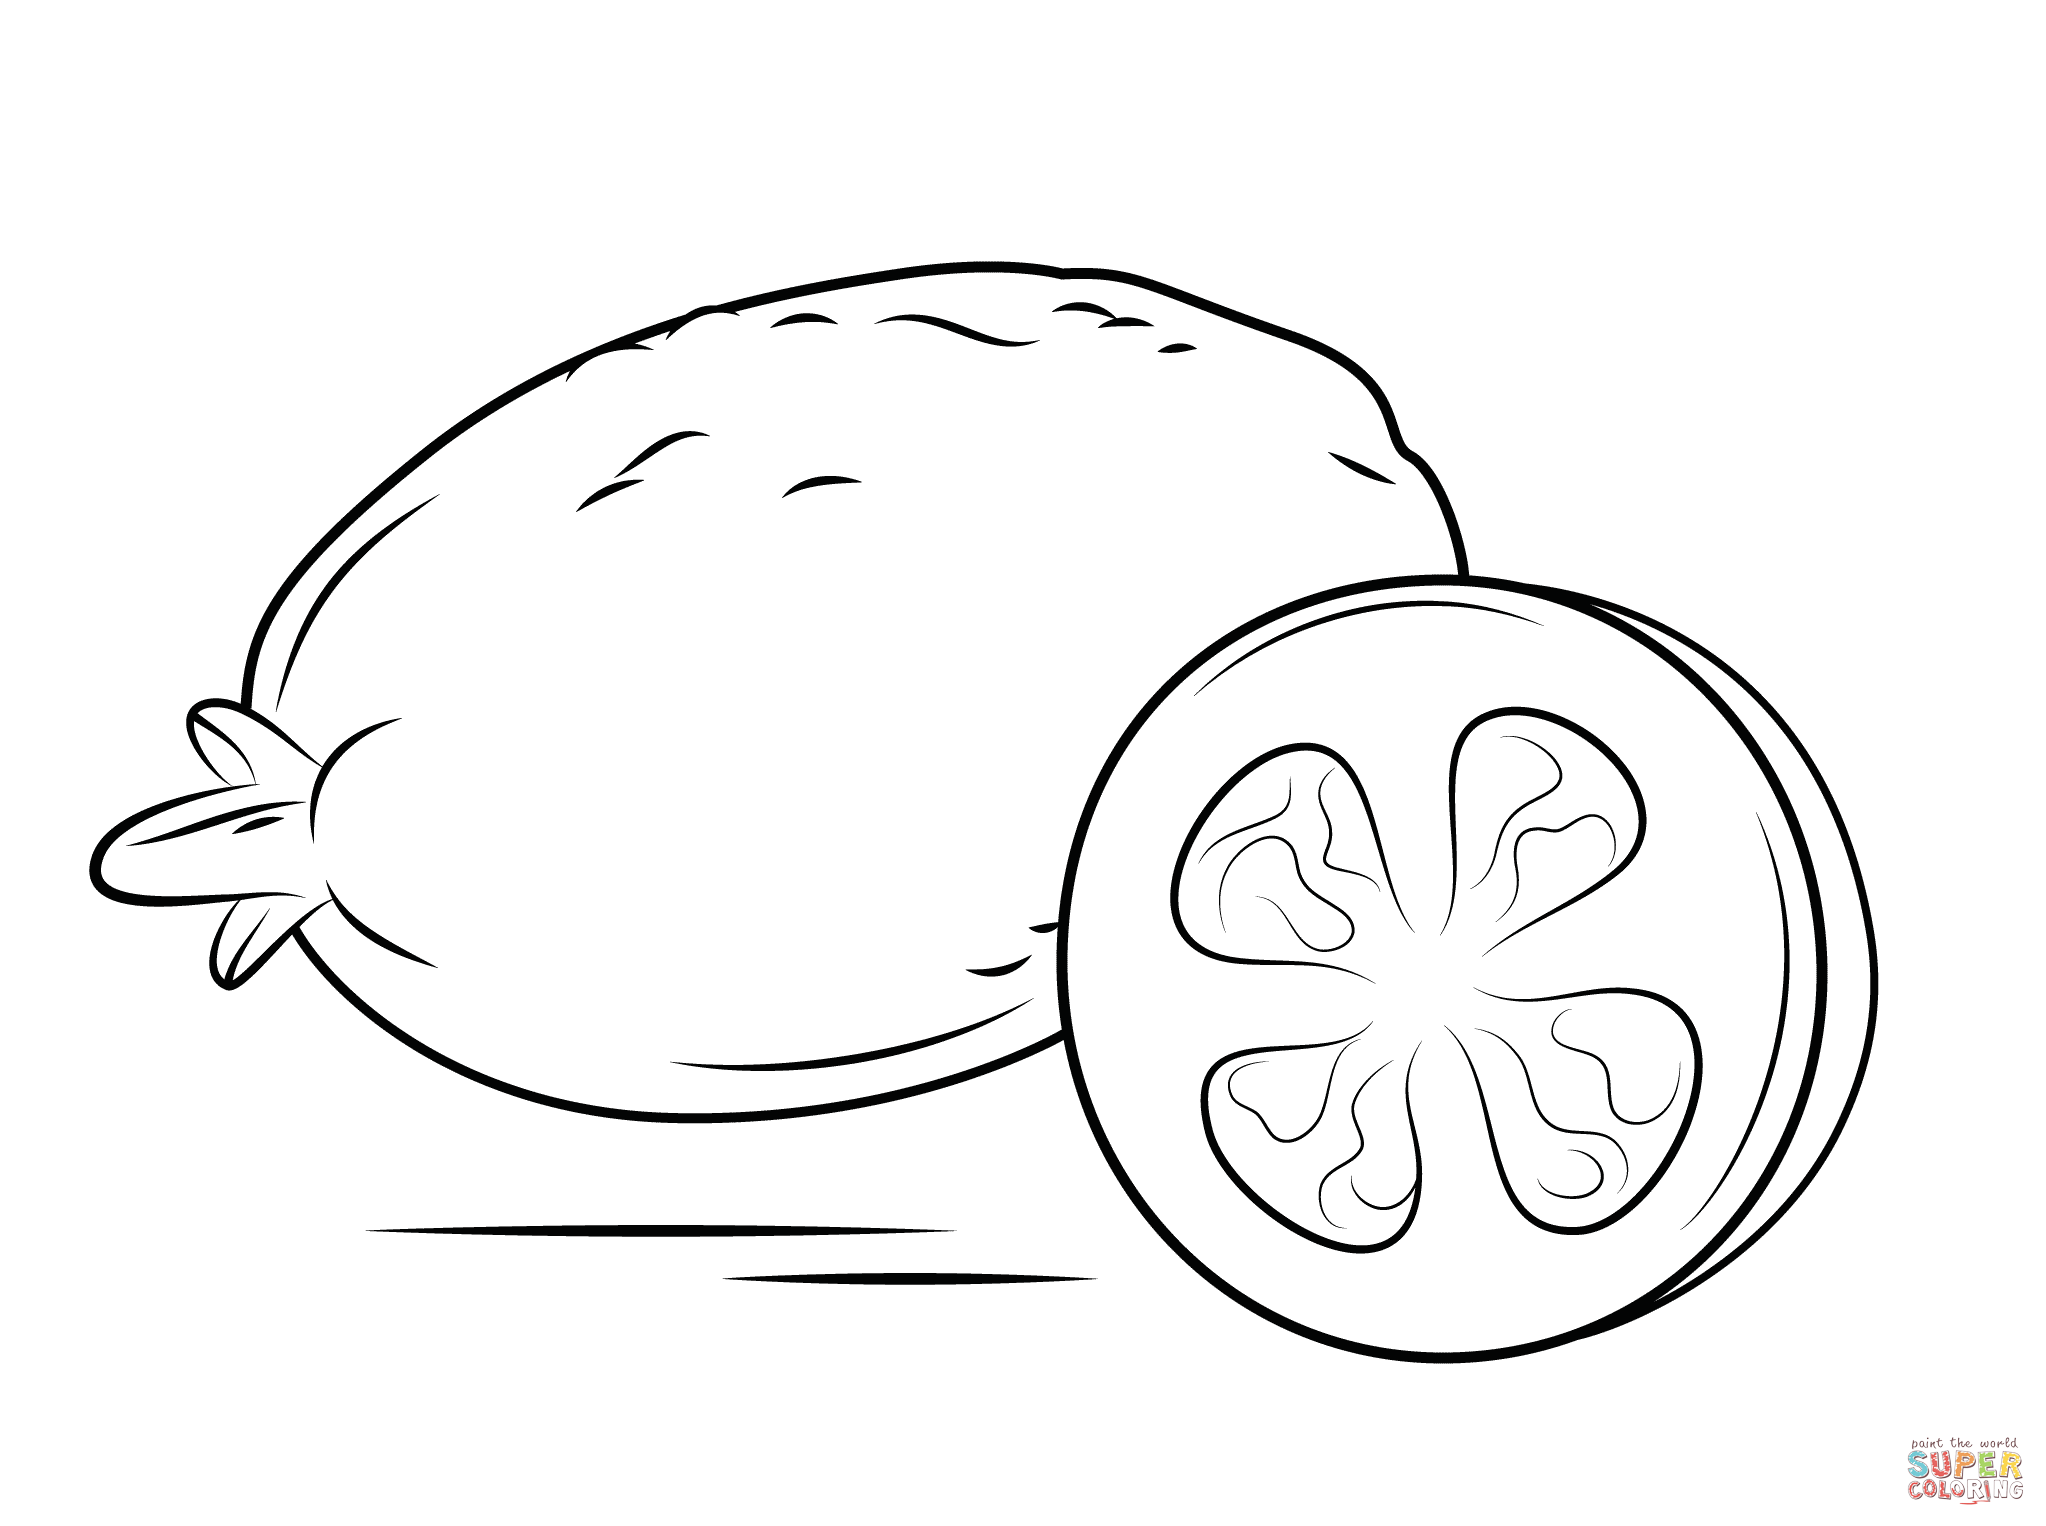 Whole Guava And Cross Section Coloring Page Free